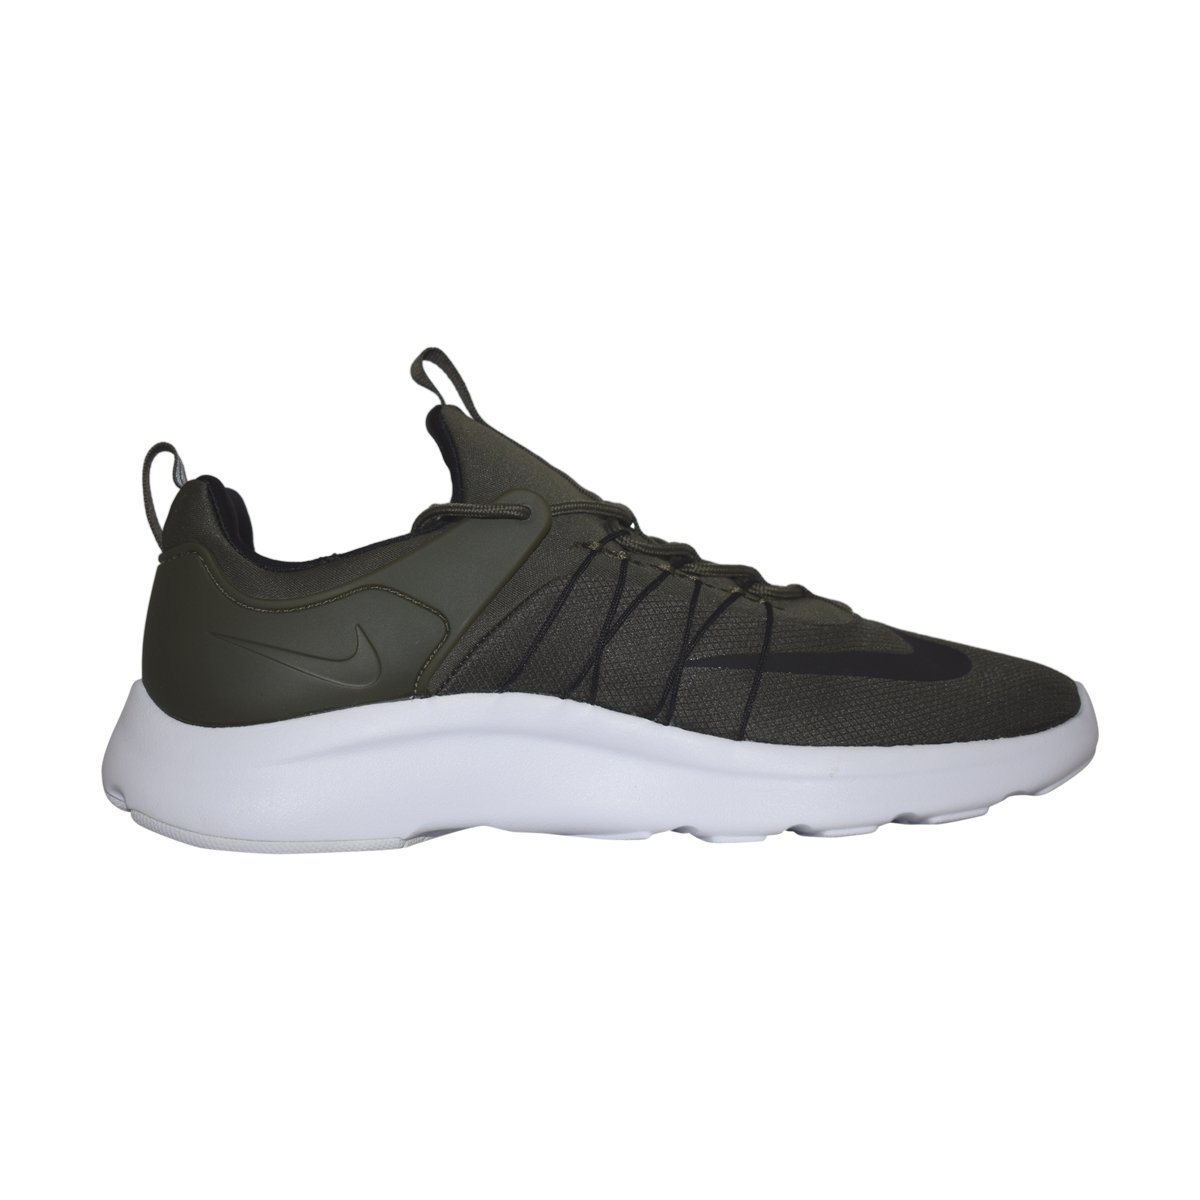 NIKE Men's Comfort Darwin Casual Shoes Lightweight Comfort Men's Athletic Running Sneaker B07D5M676Y 9.5 M US|Cargo Khaki / Black-white d03dc1